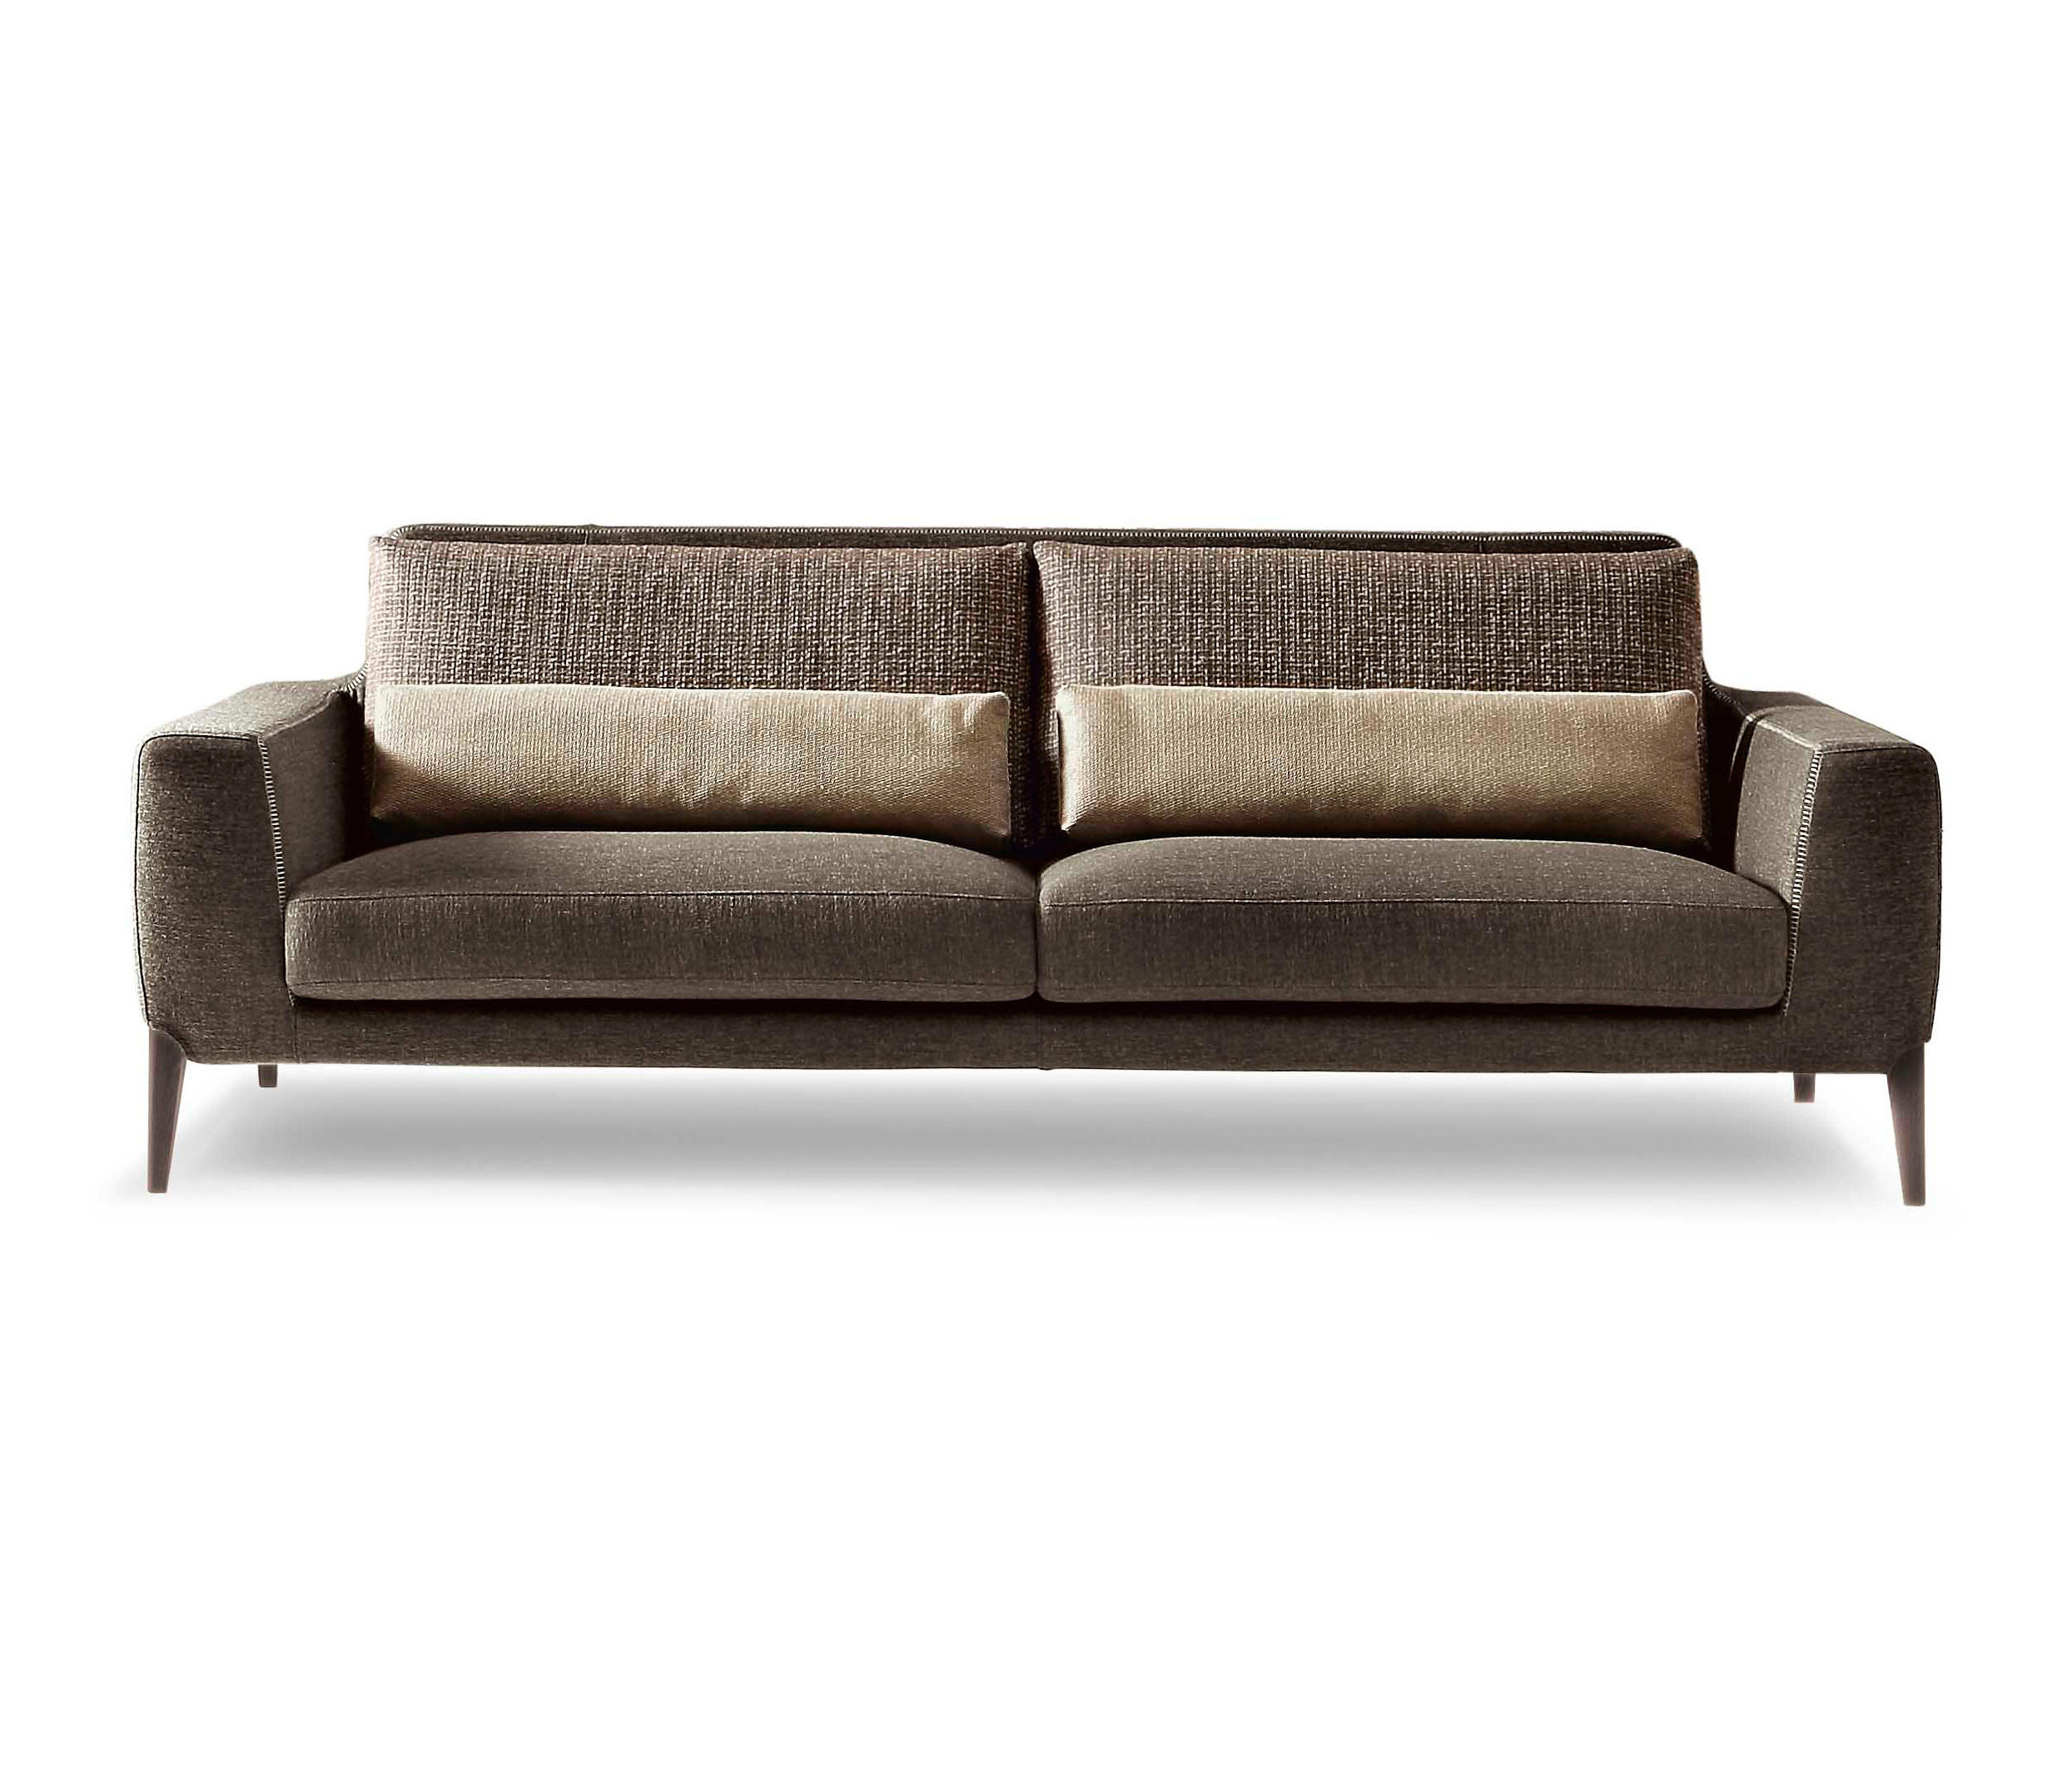 MILLER - Lounge sofas from DITRE ITALIA | Architonic